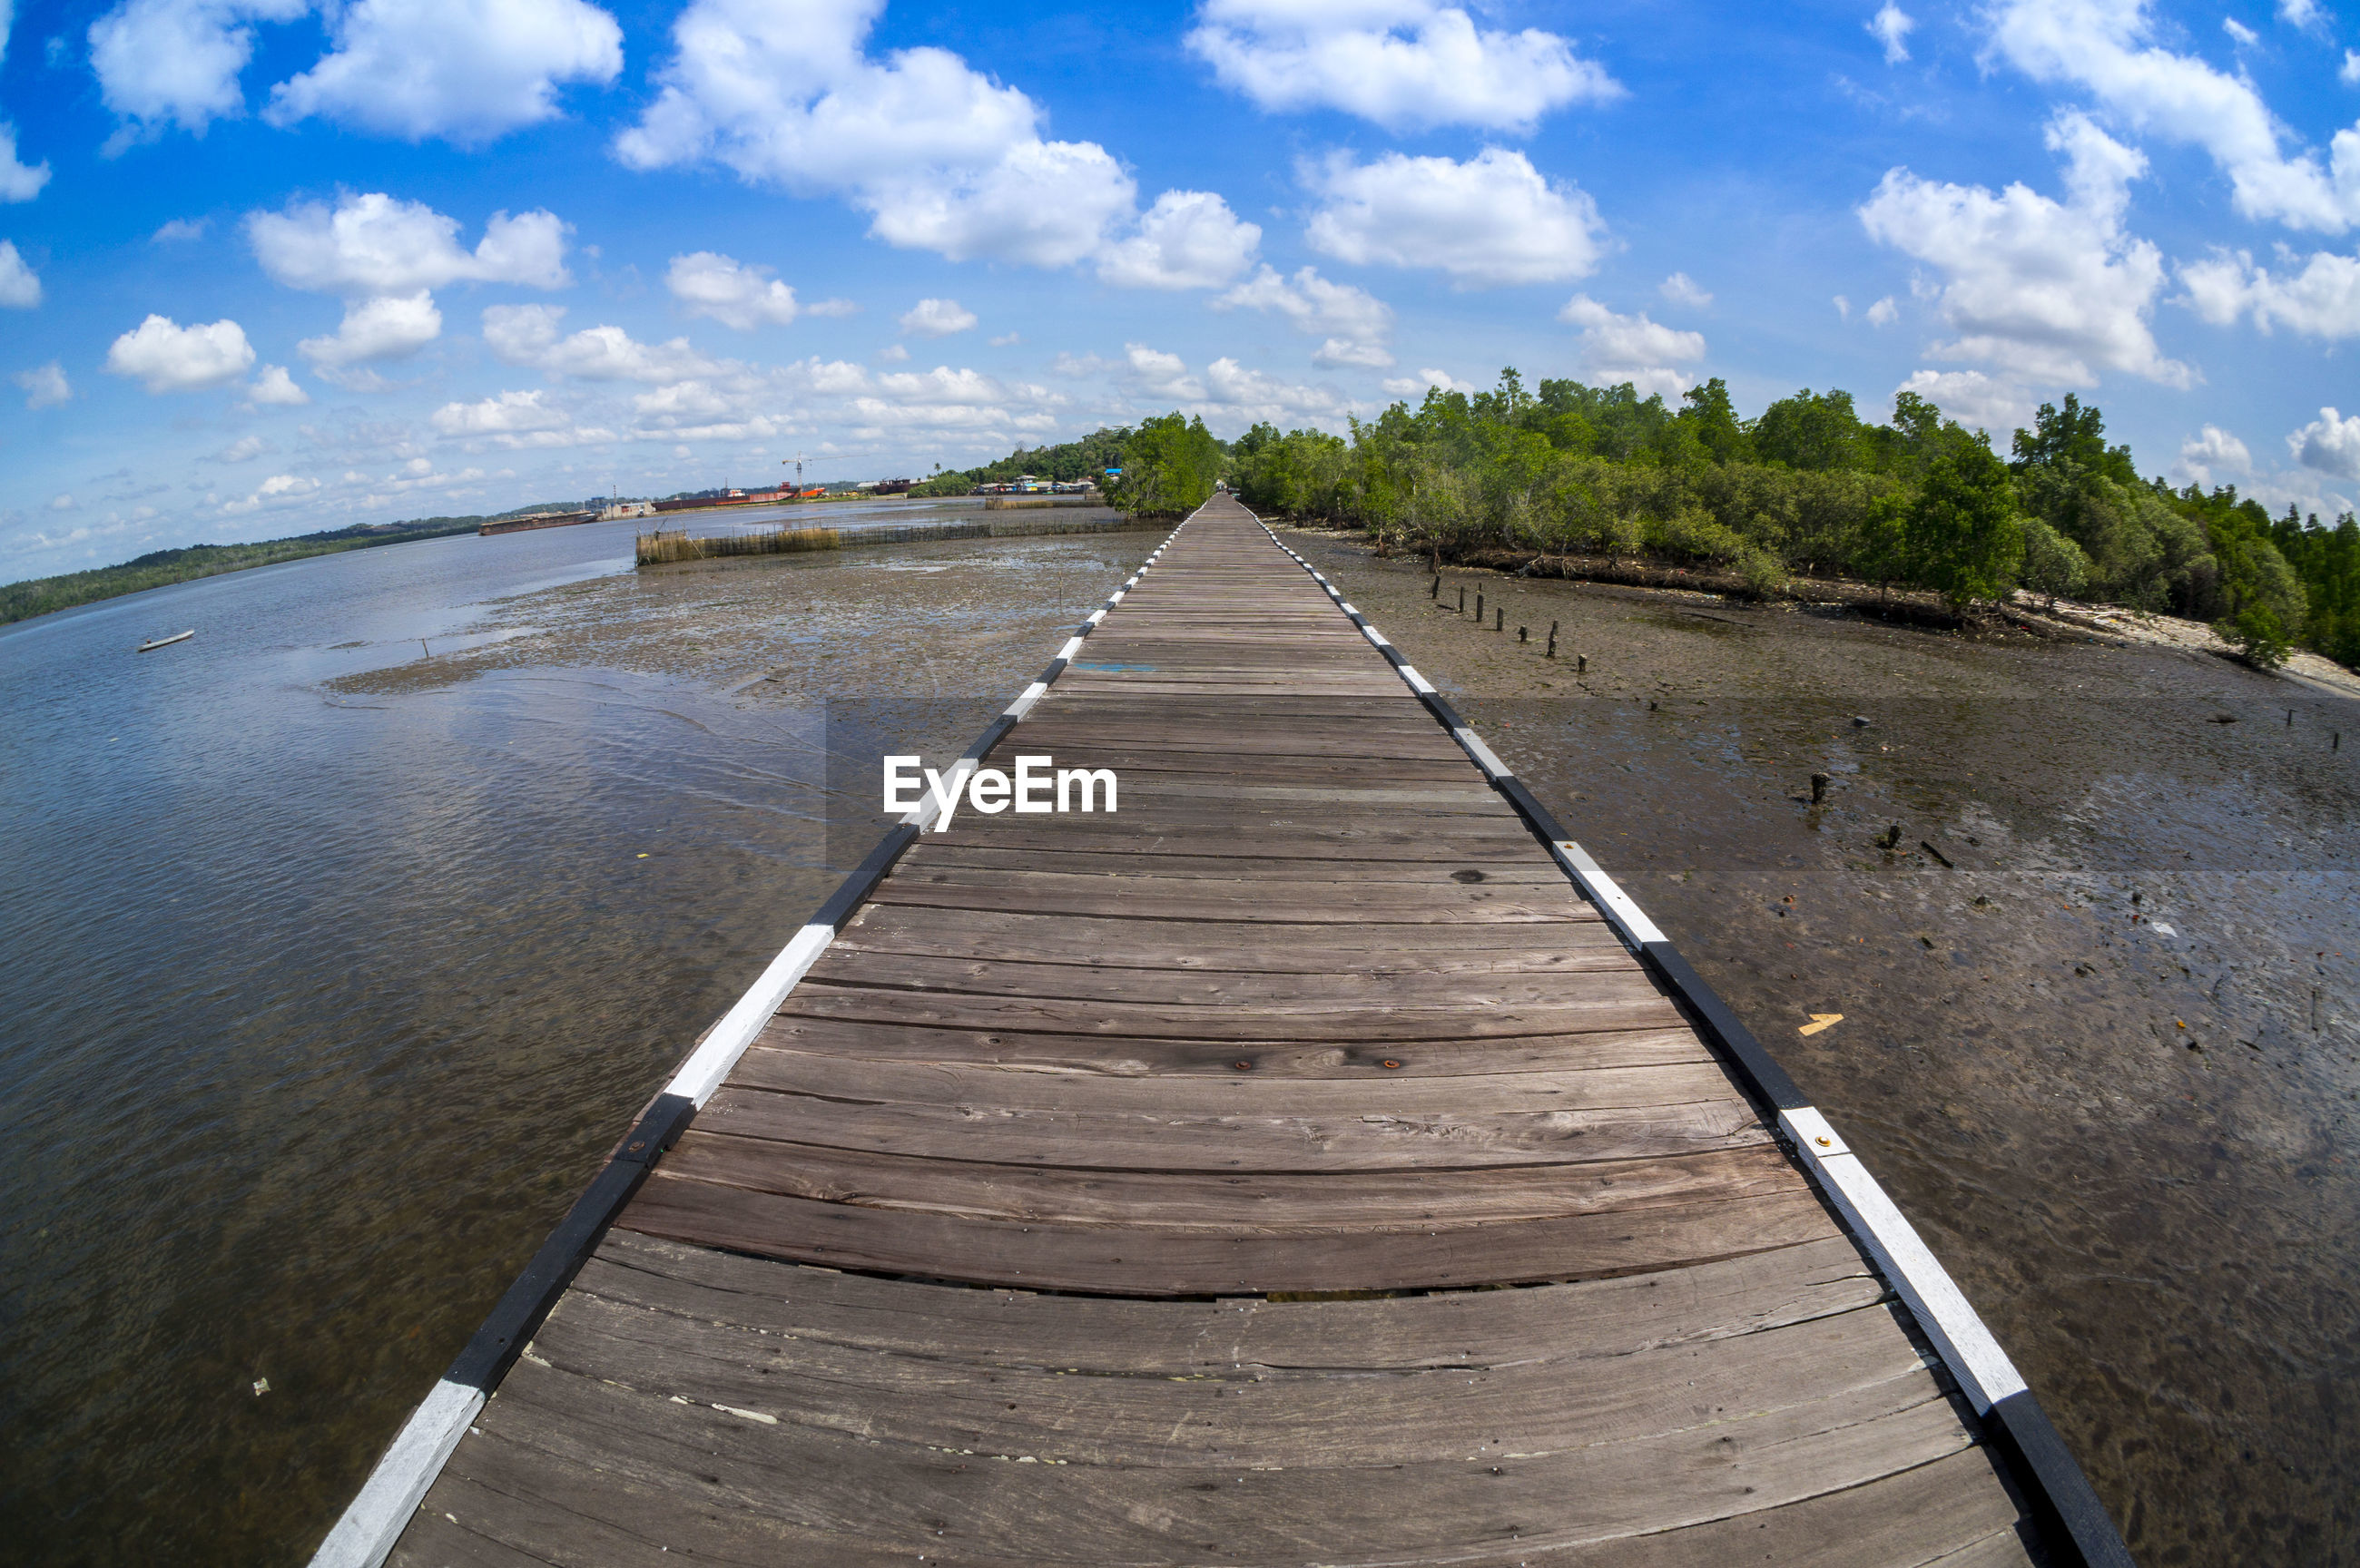 VIEW OF JETTY LEADING TOWARDS WATER AGAINST SKY